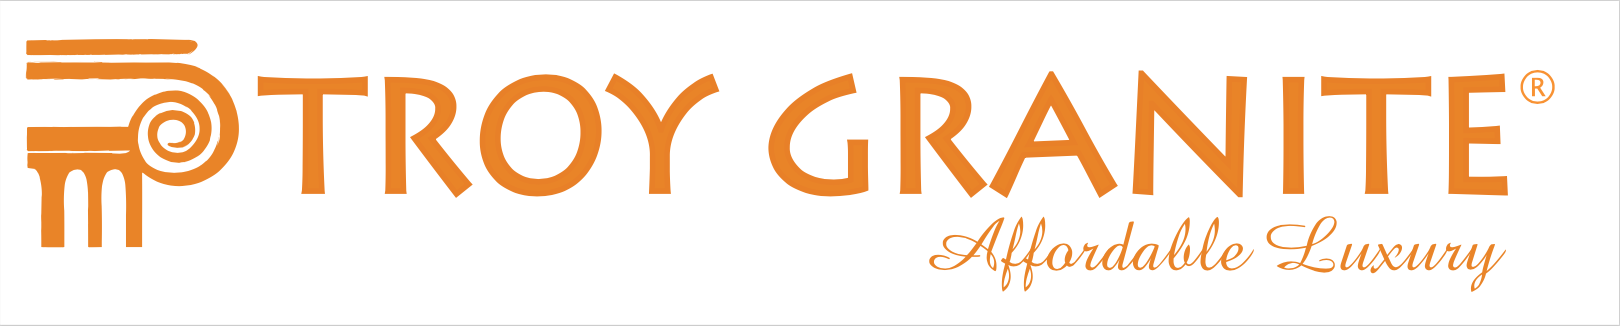 Troy Granite logo